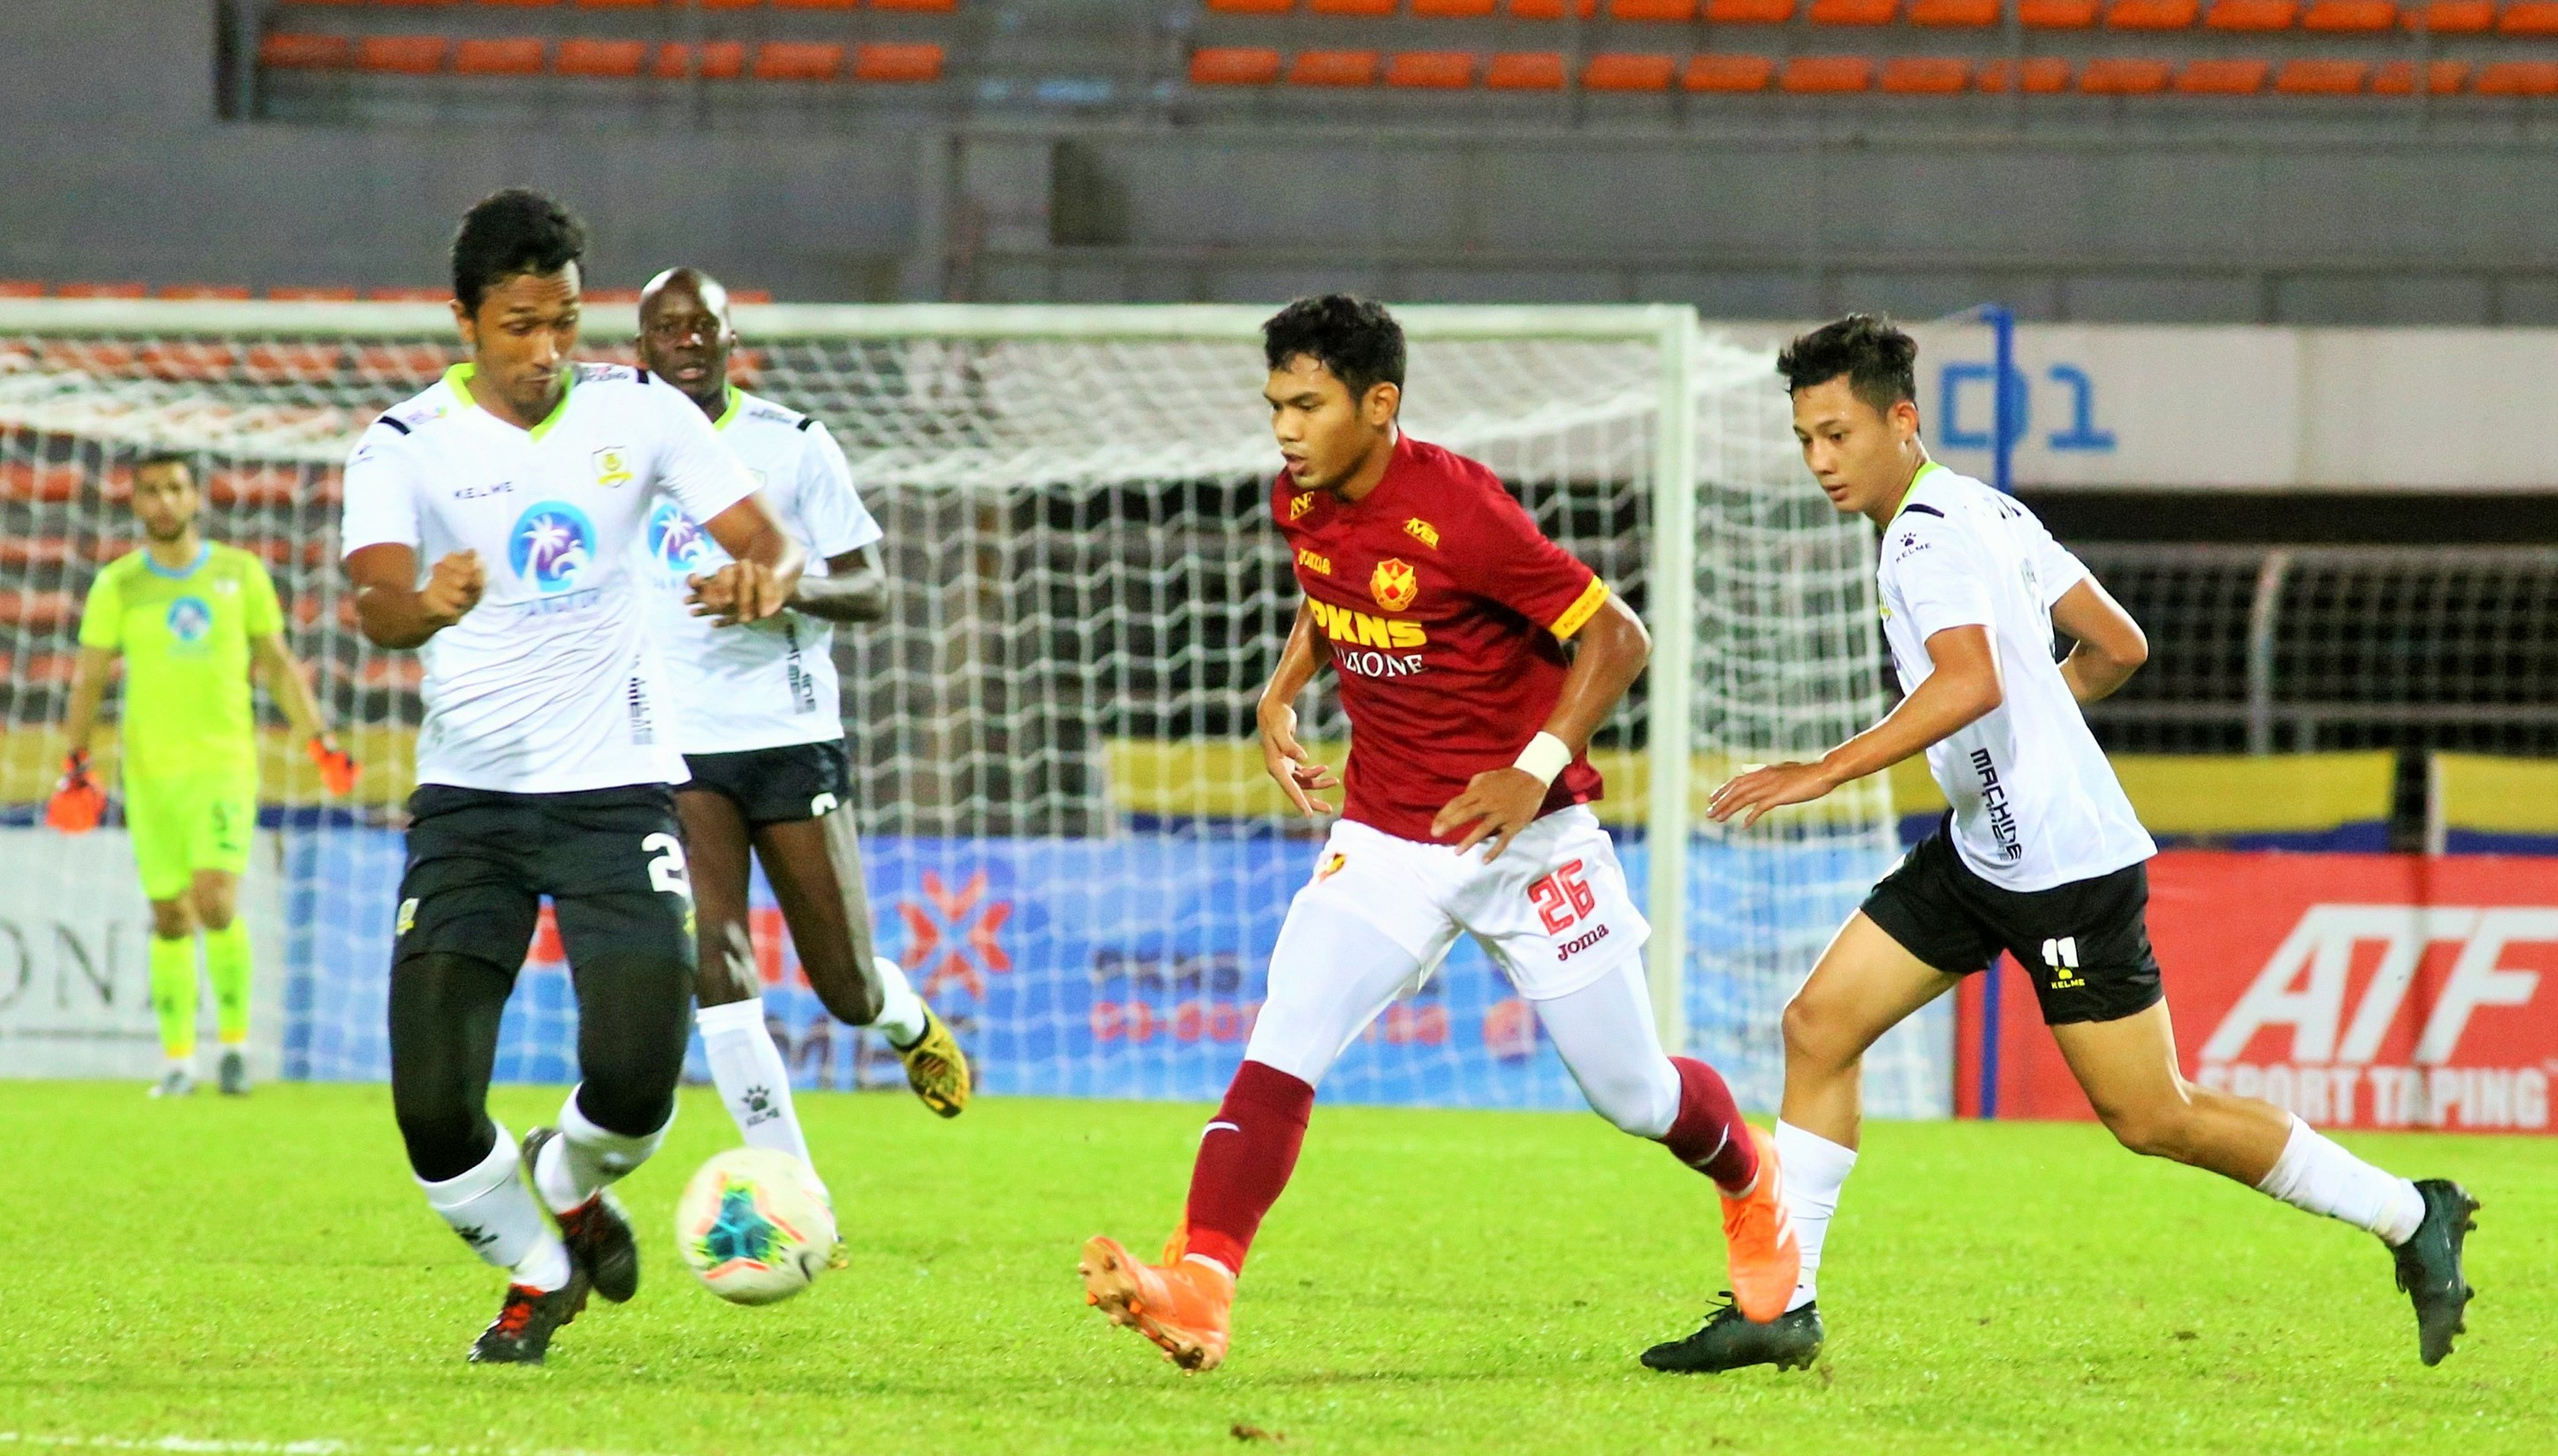 Aidil Azuan, the Selangor youngster who idolises Pirlo and dreams of vying with Syahmi Safari